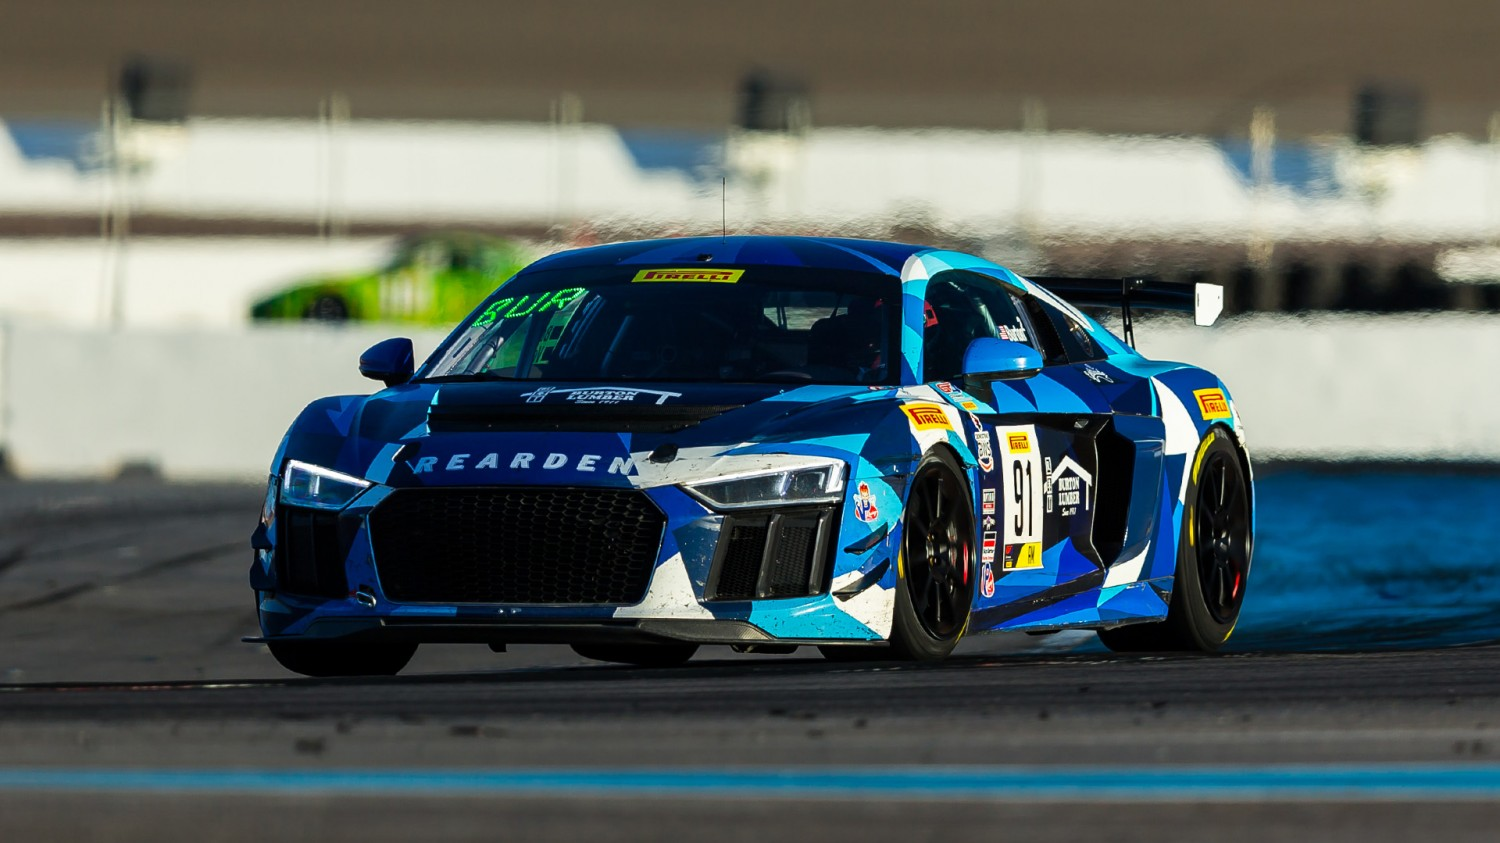 Burton, Kozarov Secure SprintX West Am Championship with 9th Win in Rearden Racing Audi R8